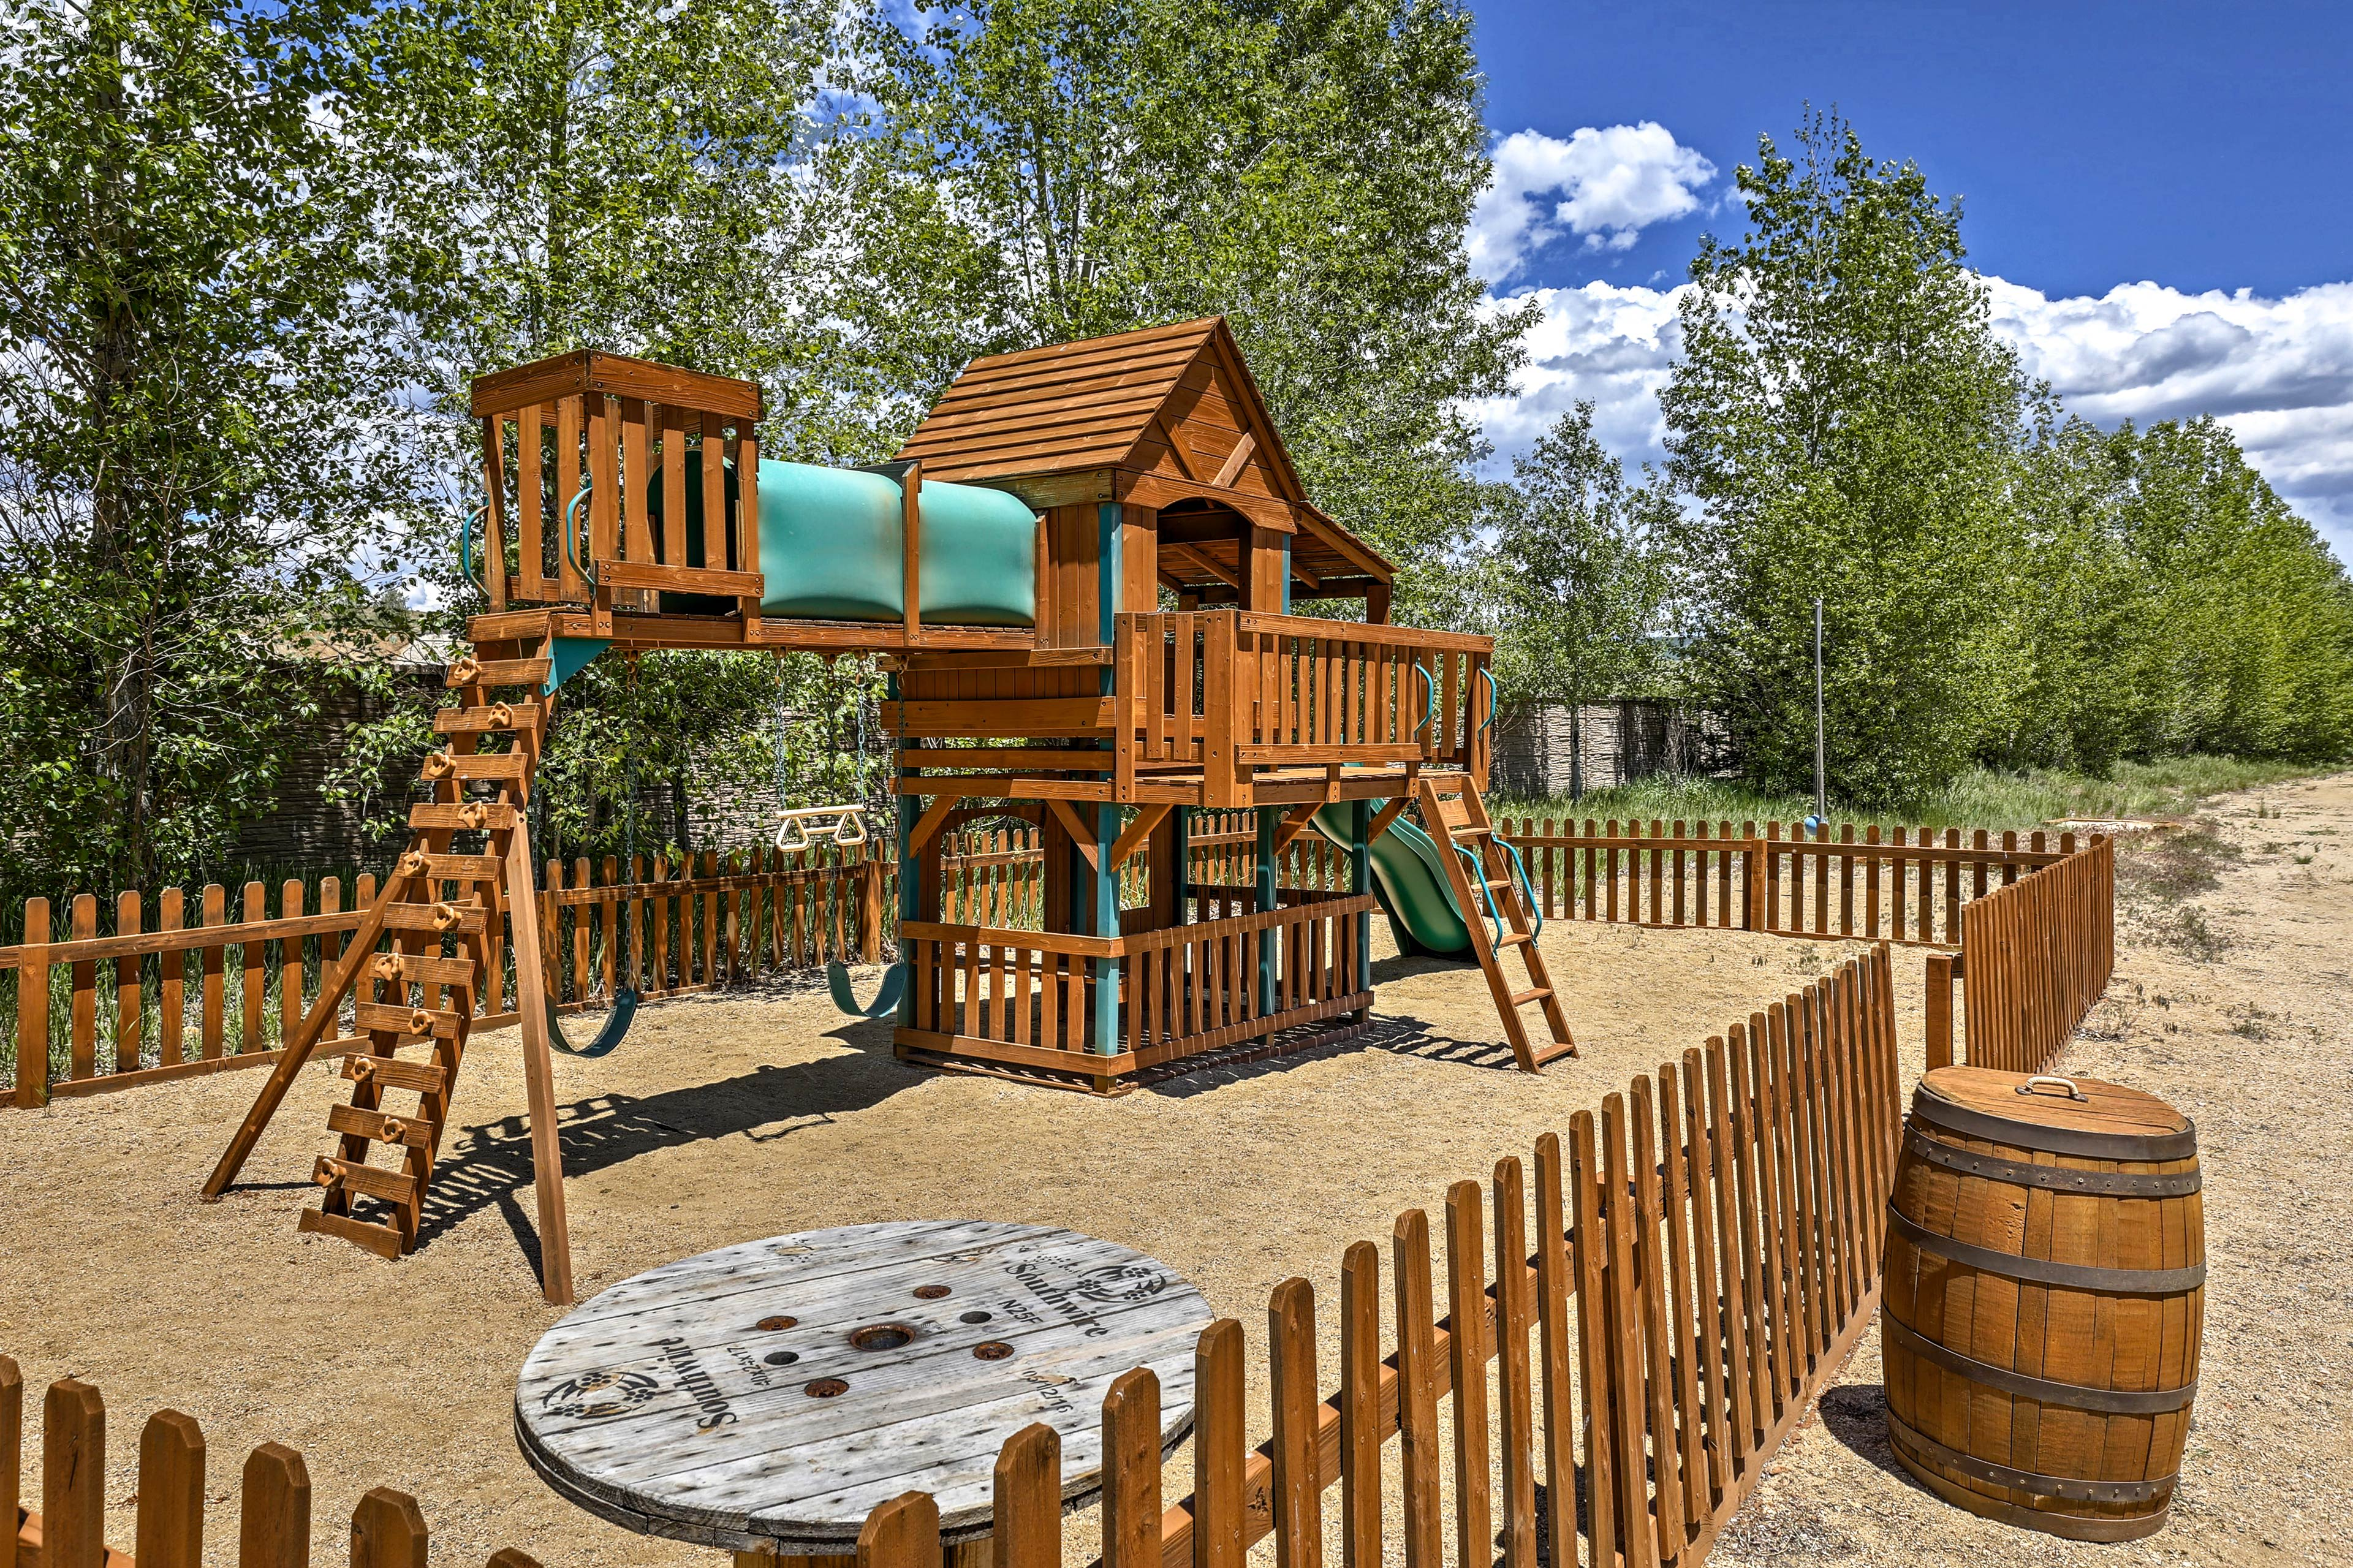 The Edgewater Resort features a large treehouse and swing set.